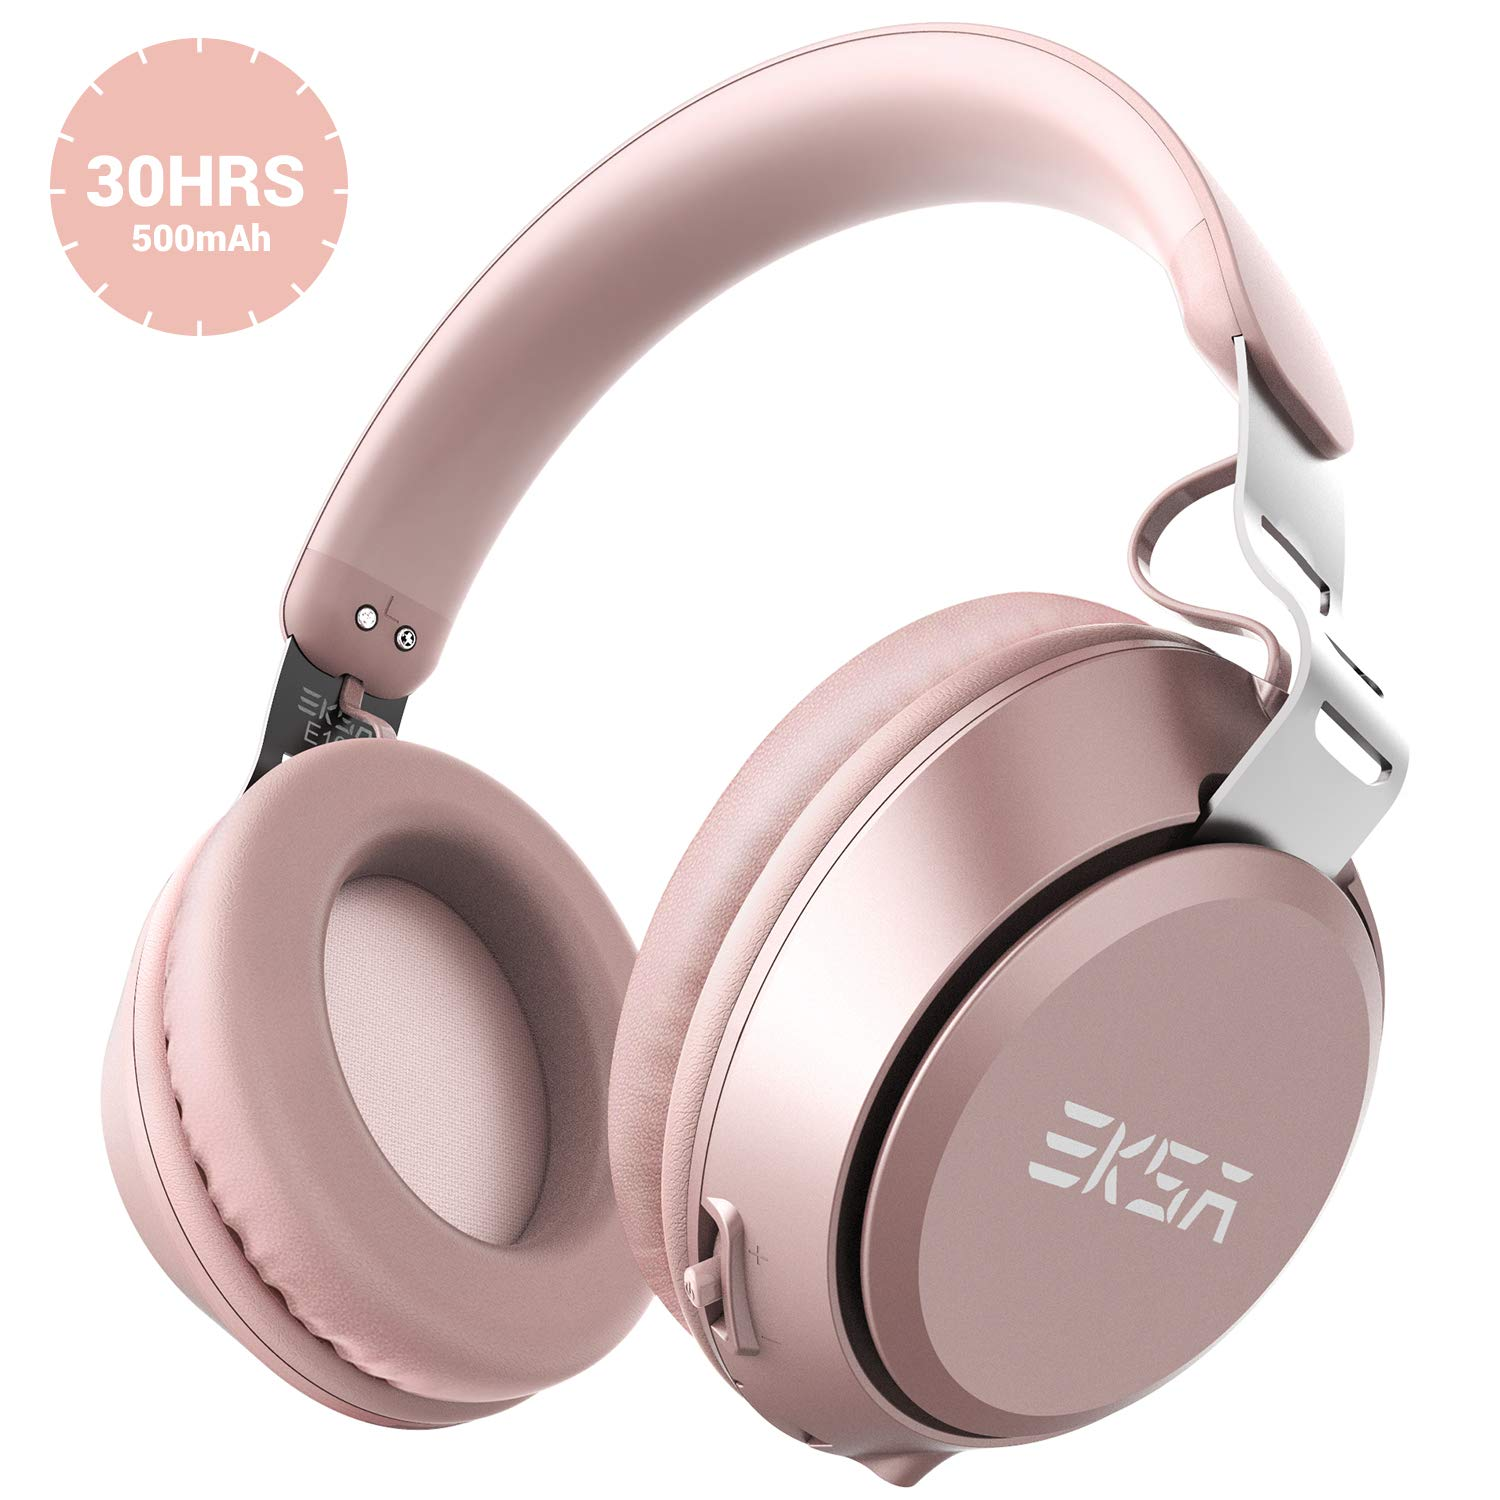 EKSA E100 Bluetooth Headphones,30 Hours Play Time Wireless Over Ear Headset with Built-in Microphone,40mm Driver,Thumping Bass, Supports Hands-Free Calling and Wired Mode for PC/Cell Phones/TV - Pink